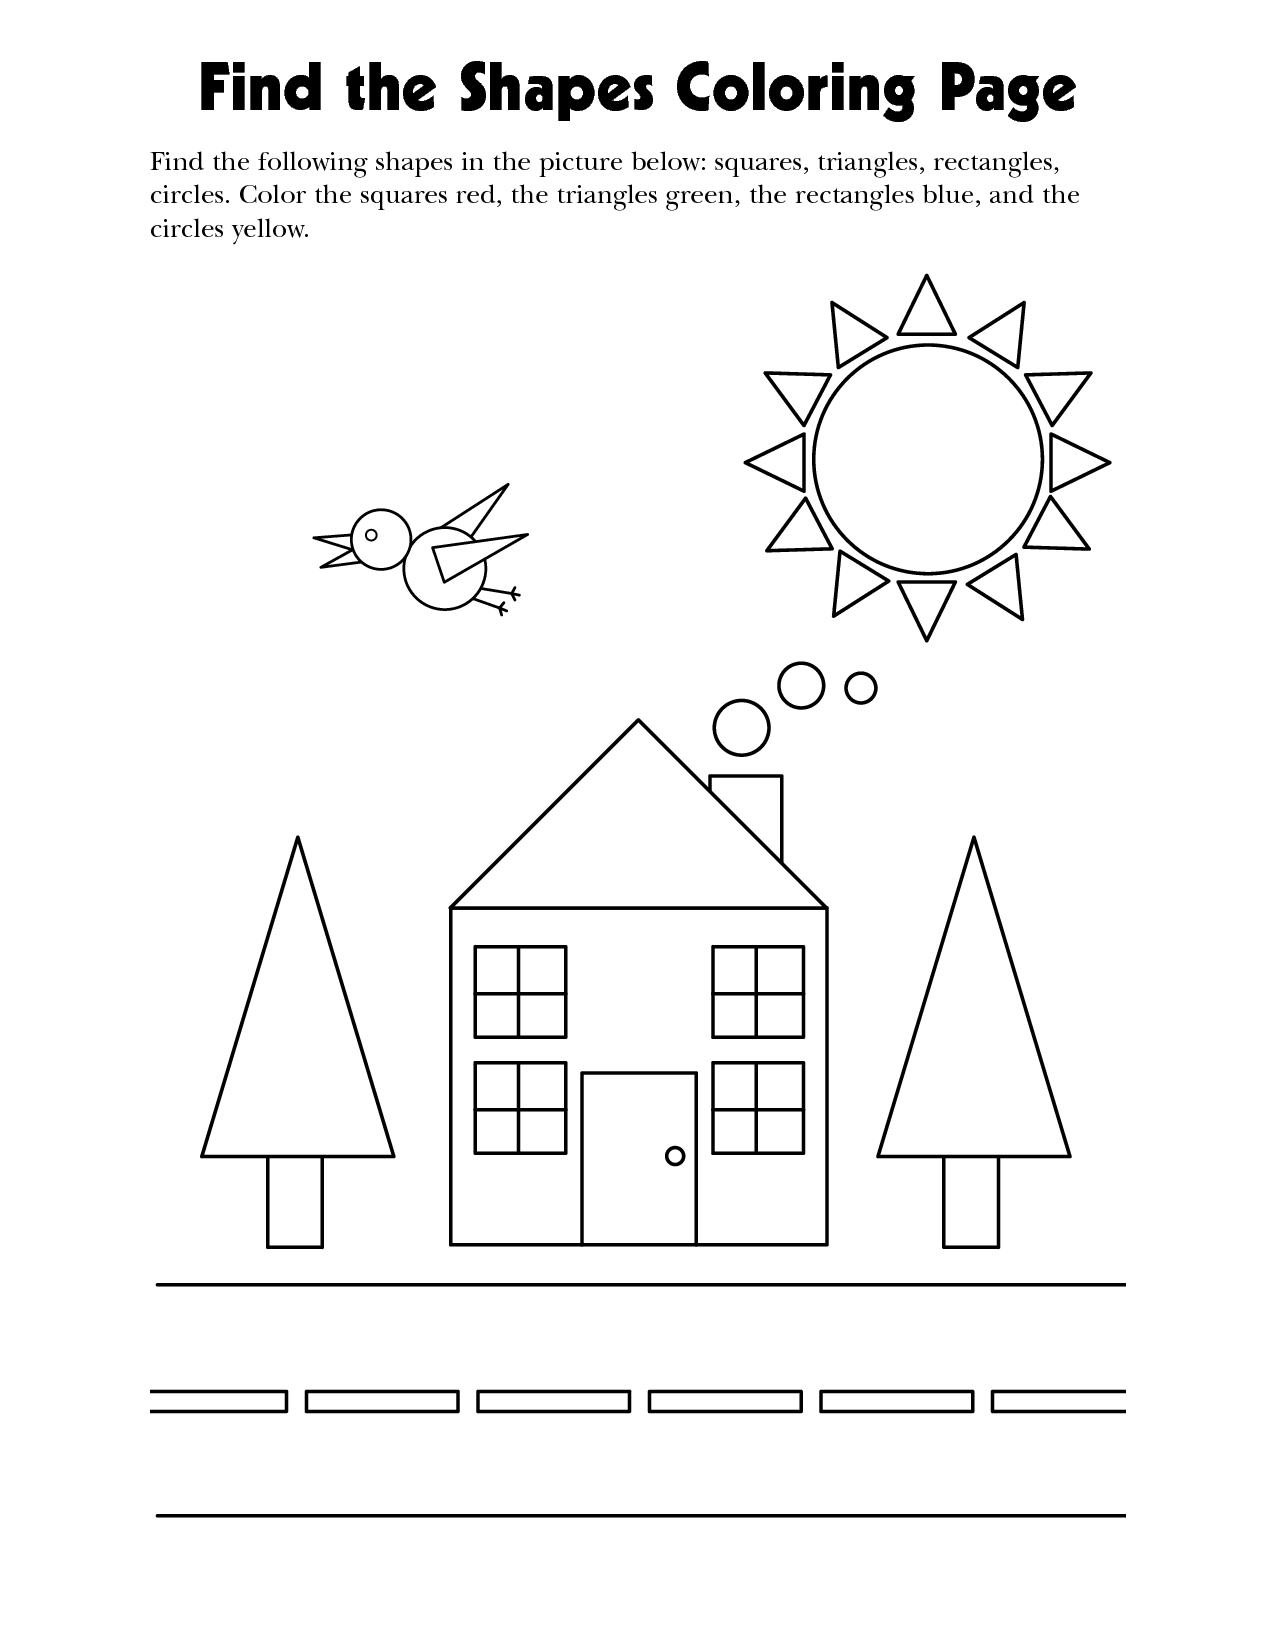 Coloring shapes worksheet - Coloring And Learning The Shapes Wir Lernen Die Formen